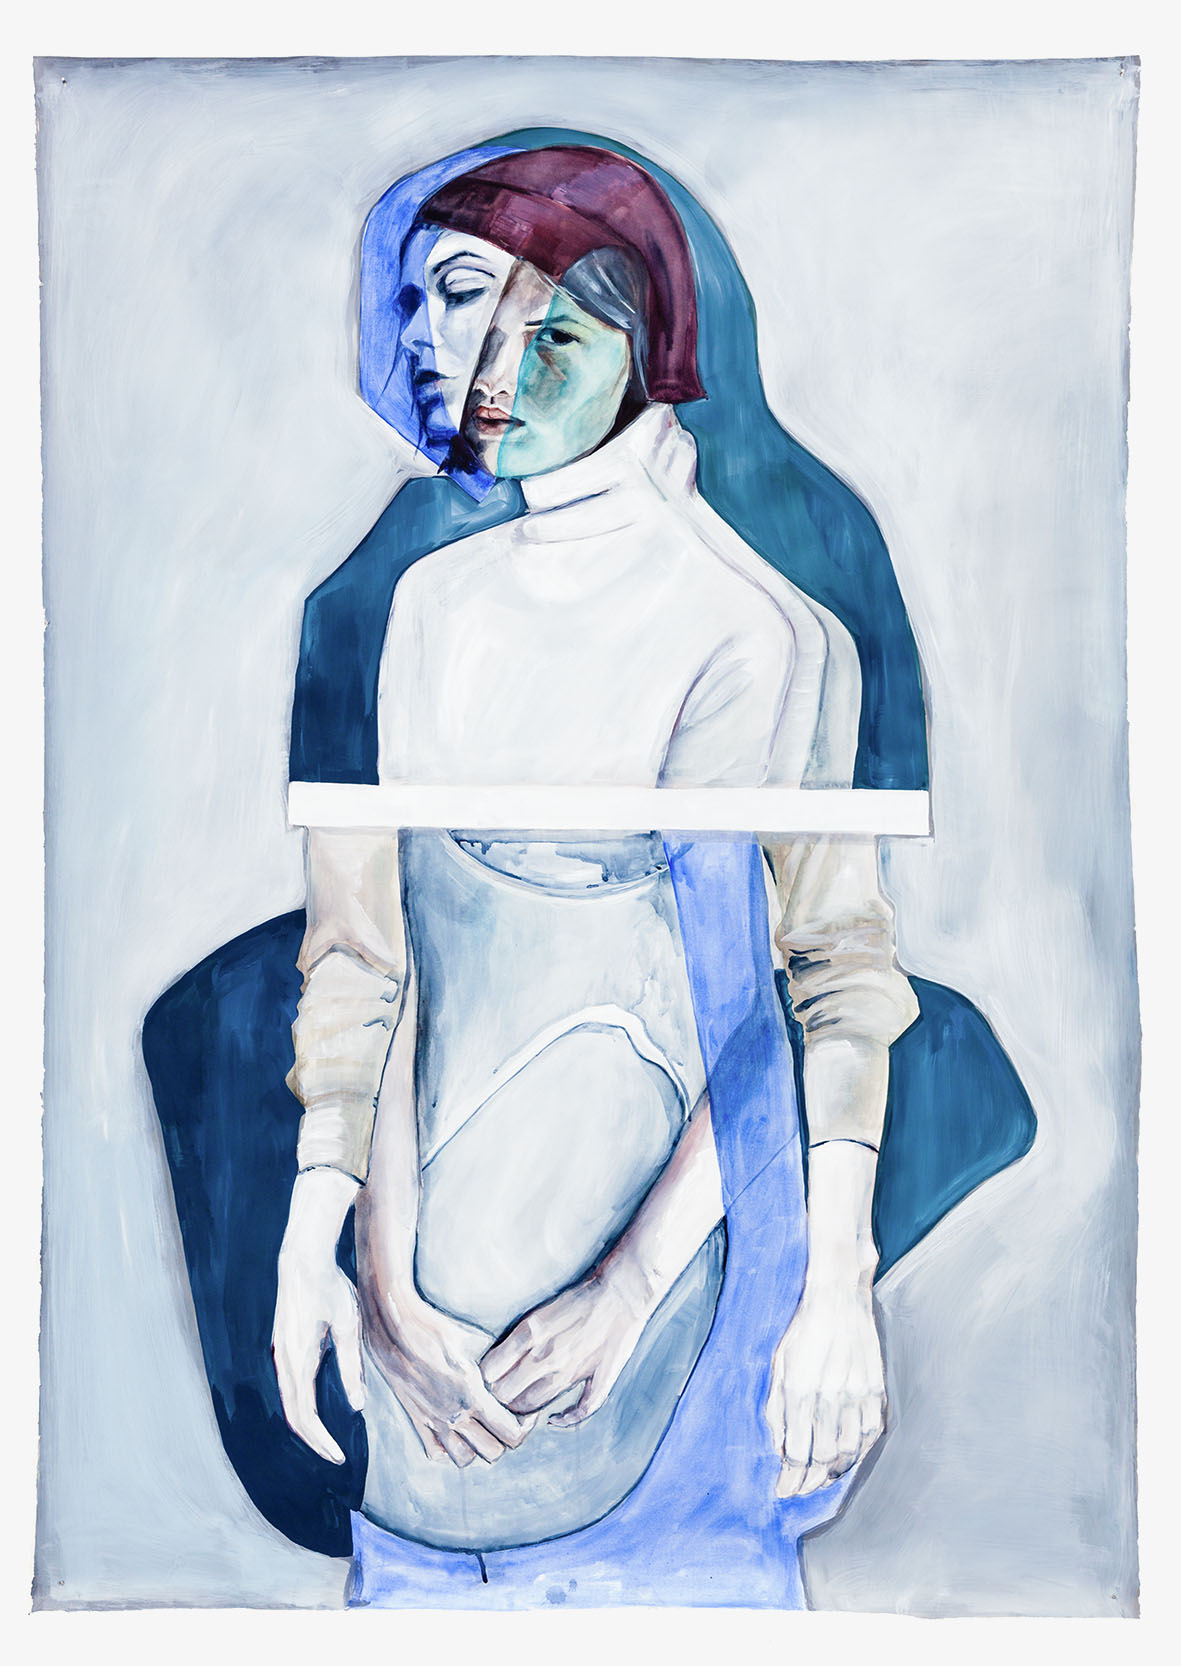 cntrl  2015, Watercolour, Gouache and Acrylic on paper, 160 x 113 cm  SOLD